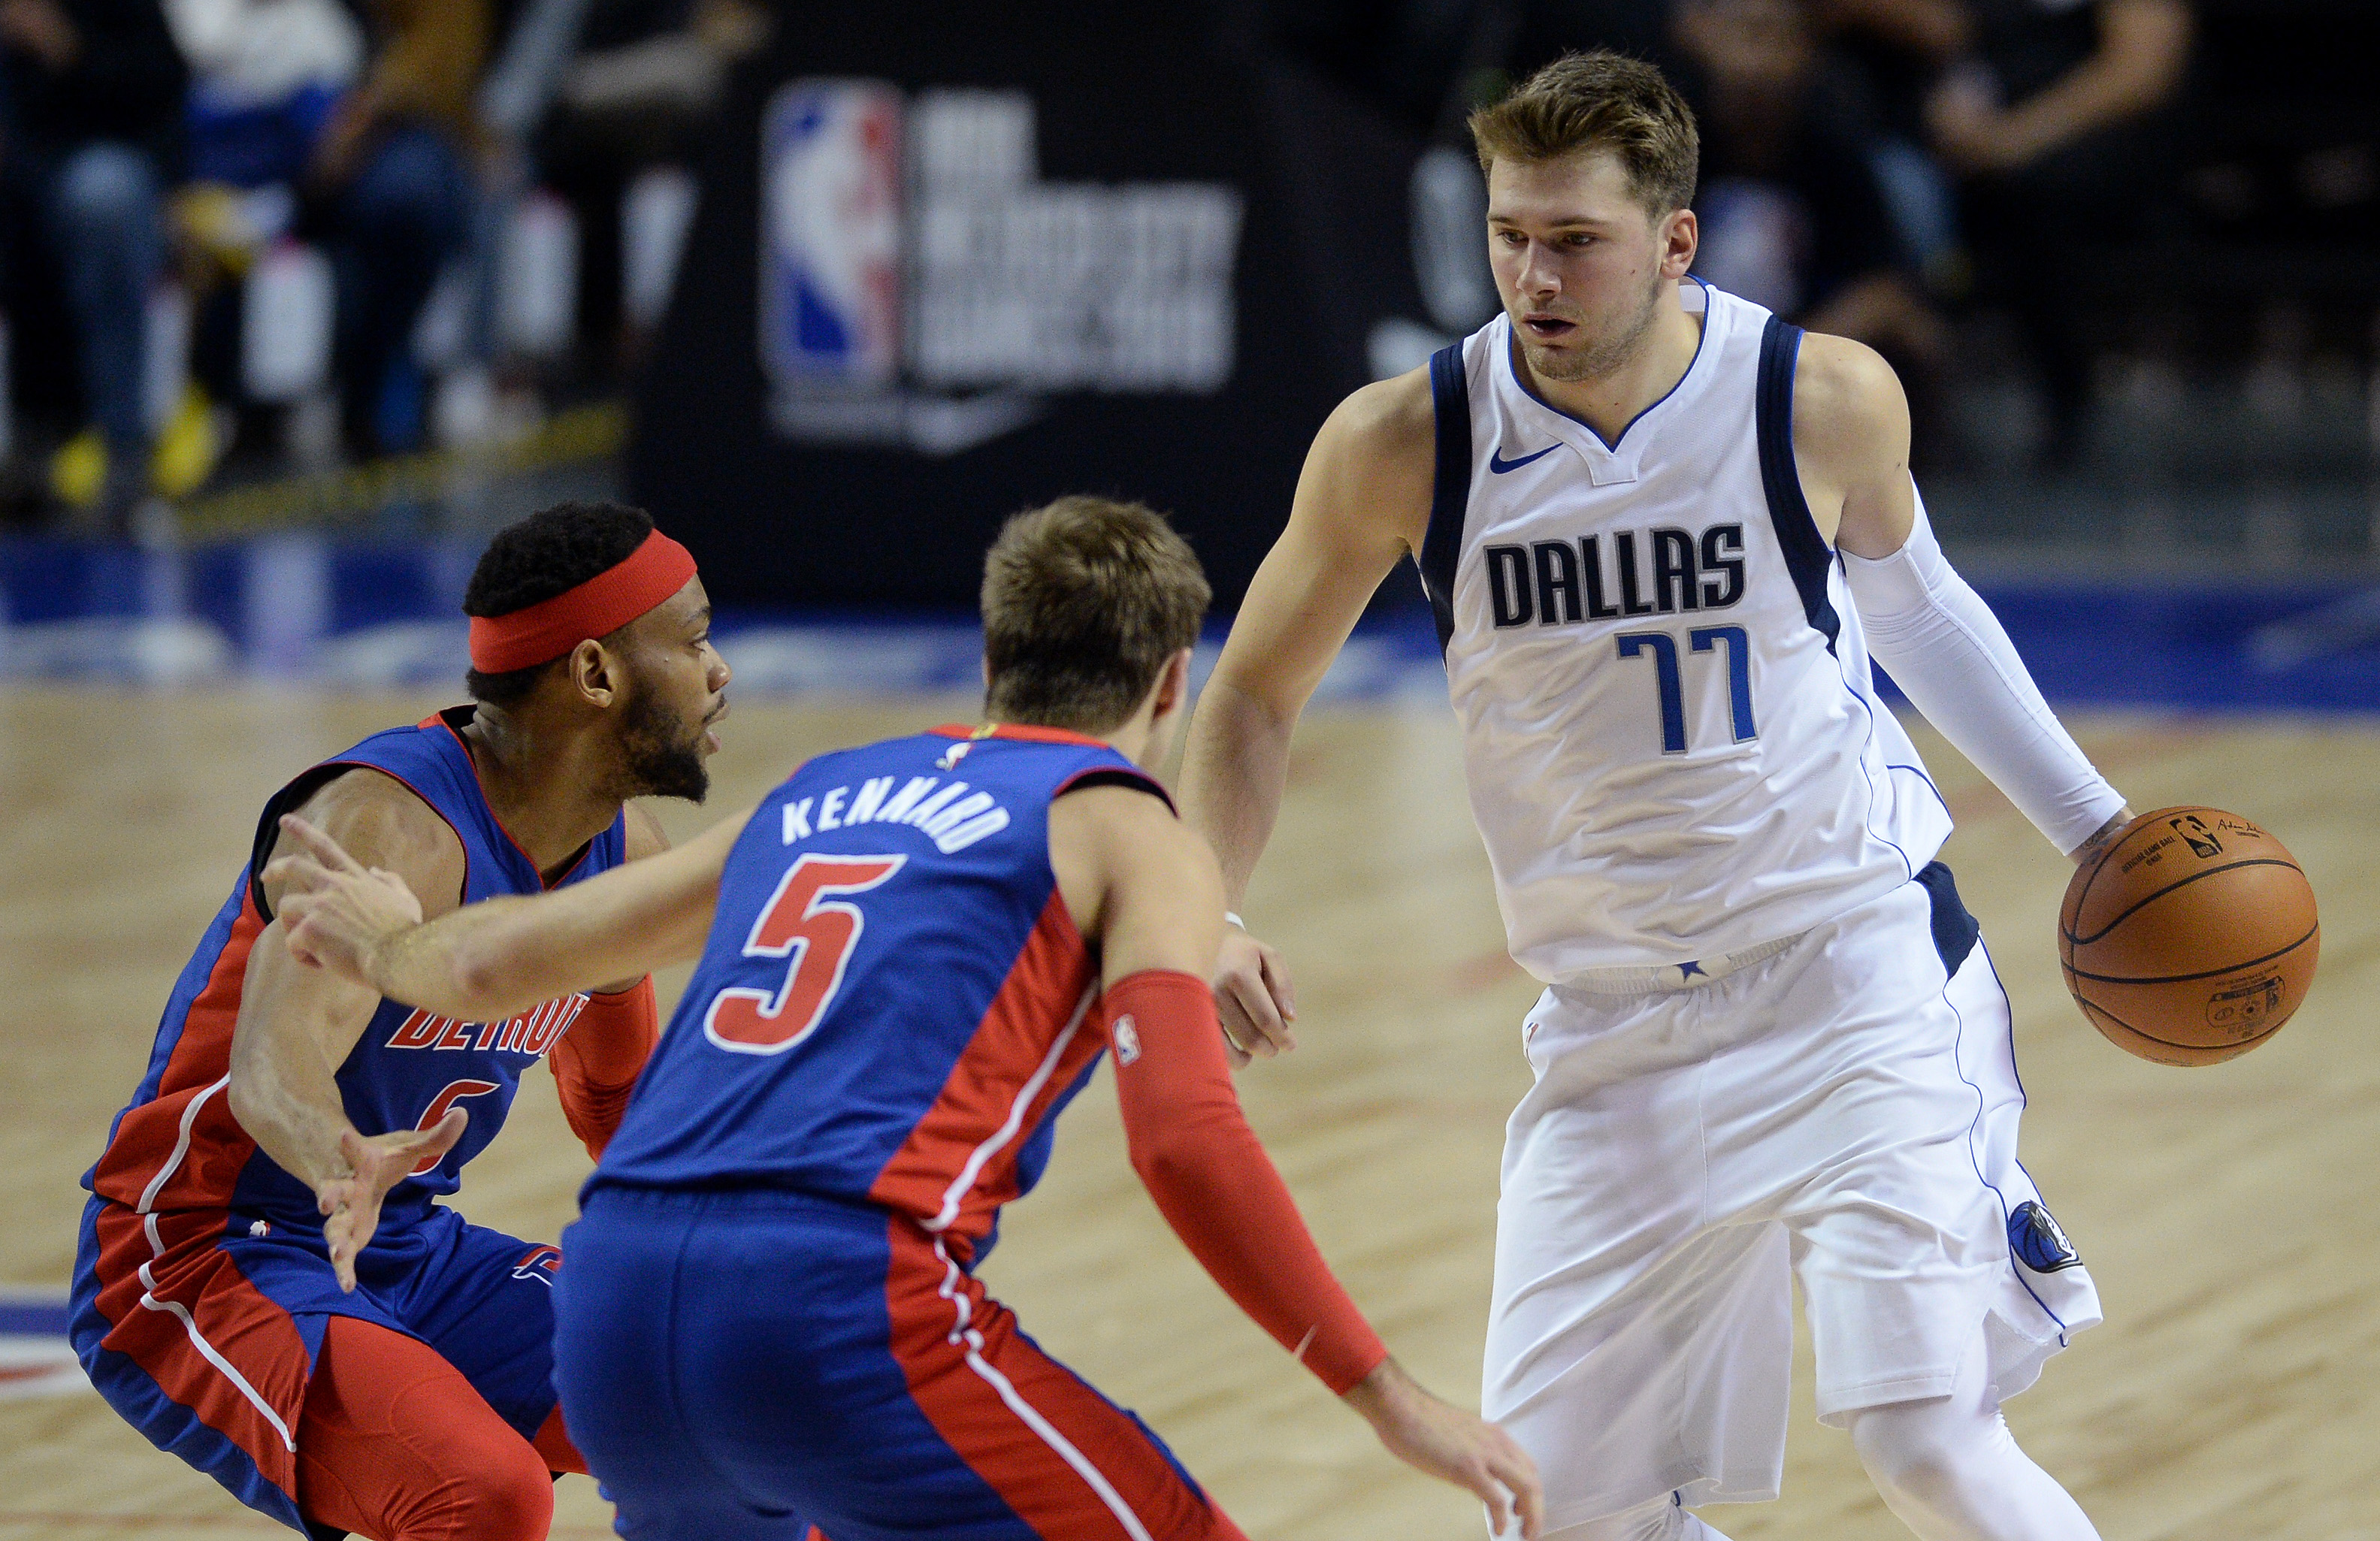 Dallas Mavericks forward Luka Doncic dribbles the ball while defended by Detroit Pistons guards Luke Kennard and Bruce Brown during the second half at Mexico City Arena.